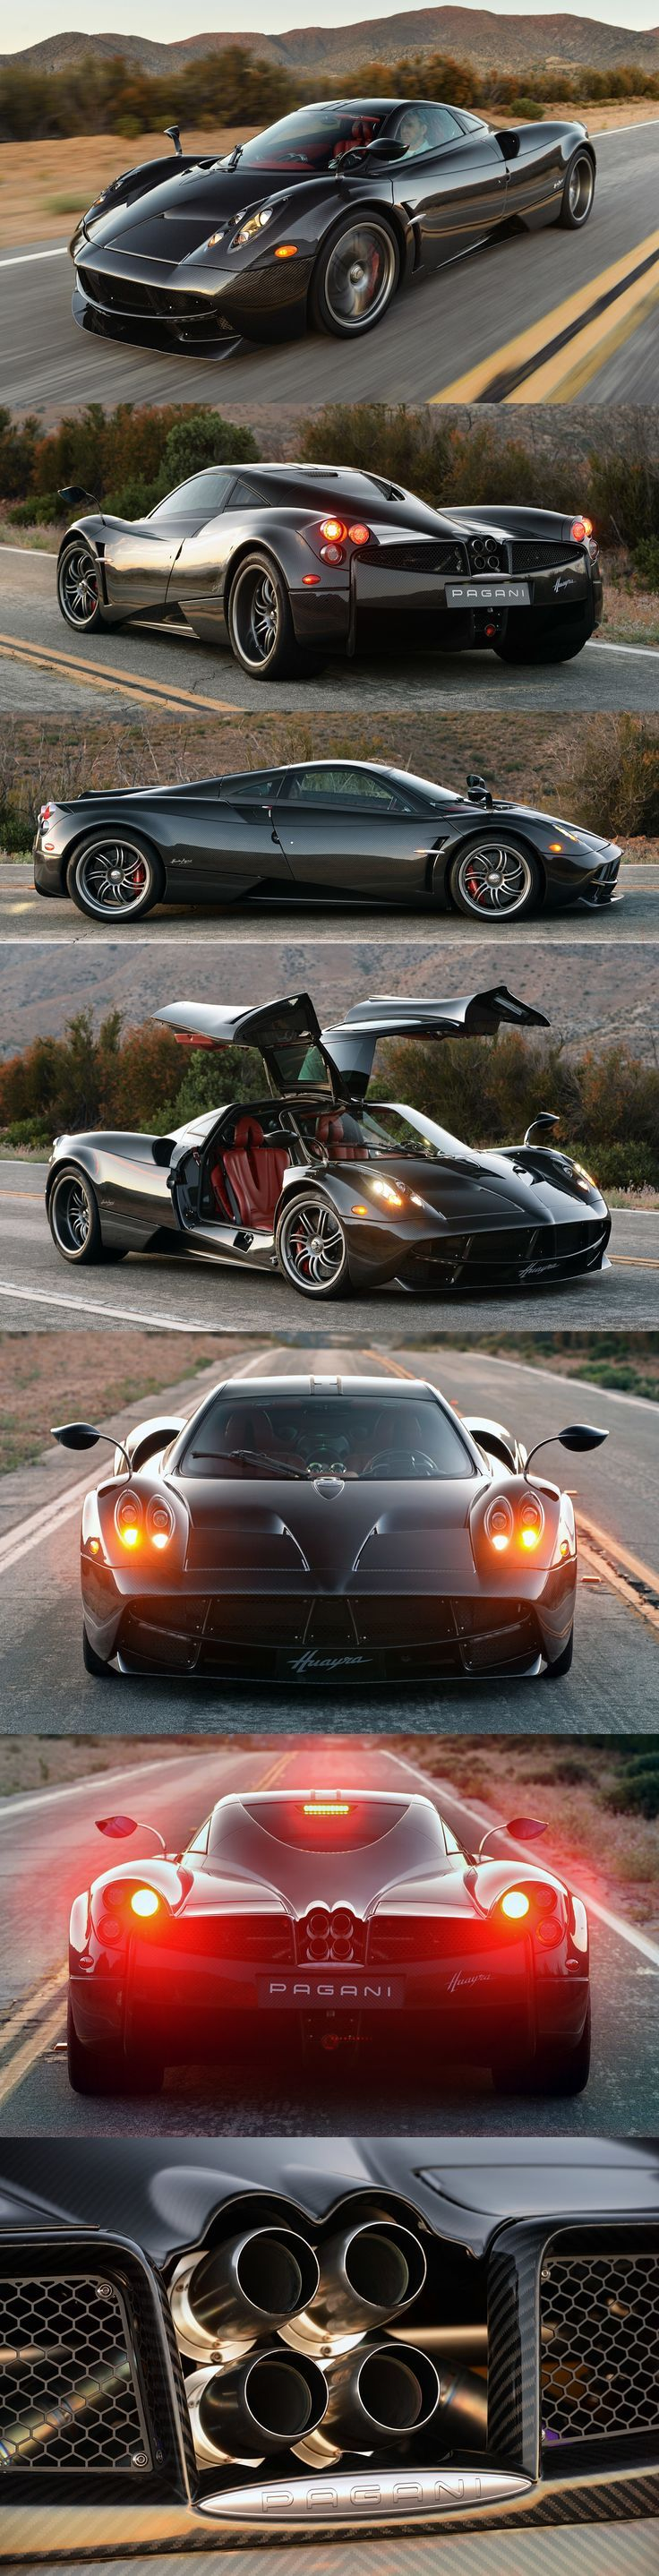 2014 Pagani Huayra  #RePin by AT Social Media Marketing - Pinterest Marketing Specialists ATSocialMedia.co.uk